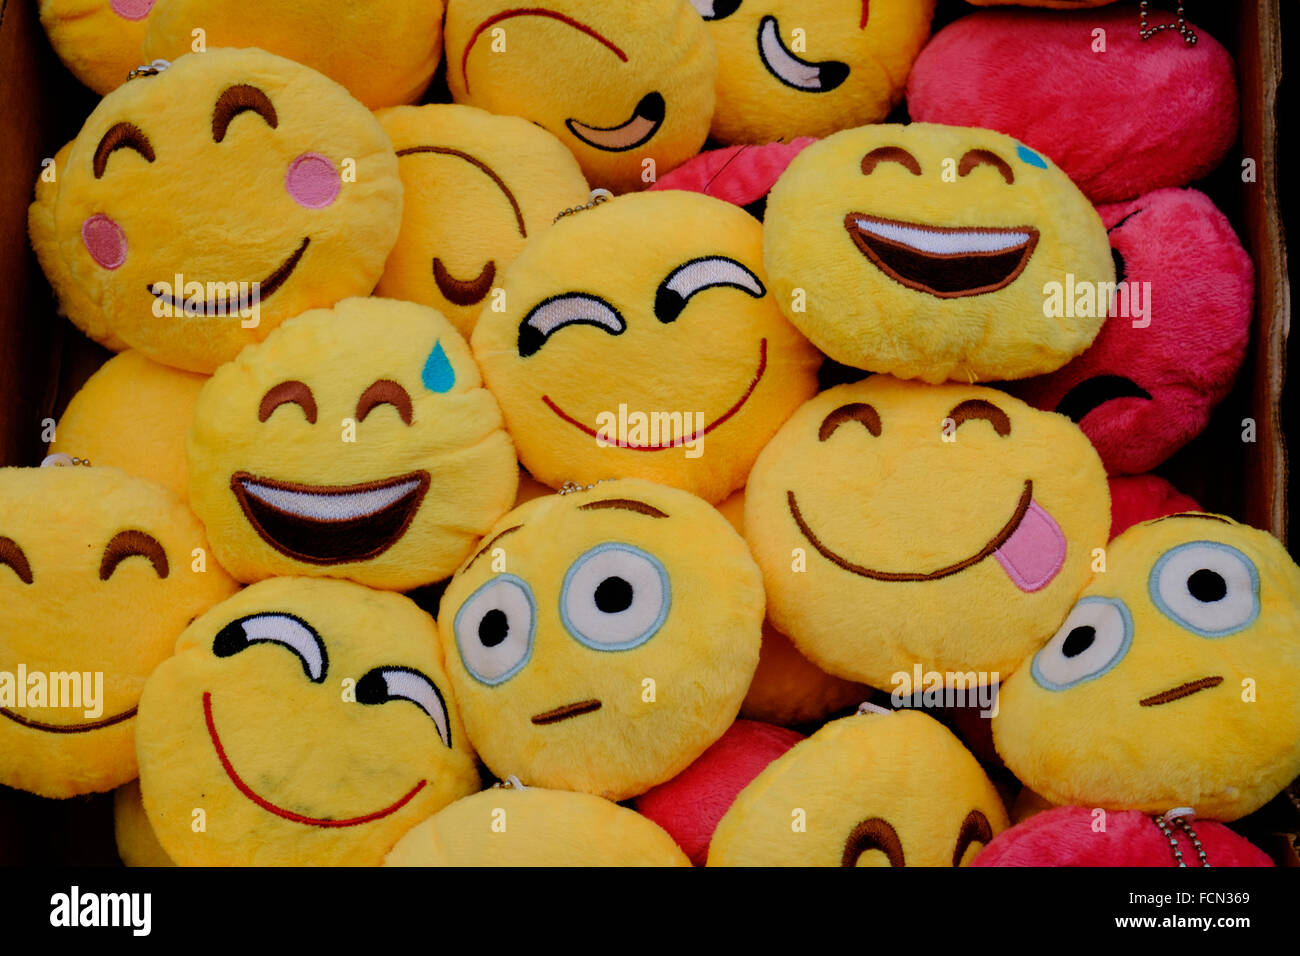 Emoji toys showing different emotions - Stock Image